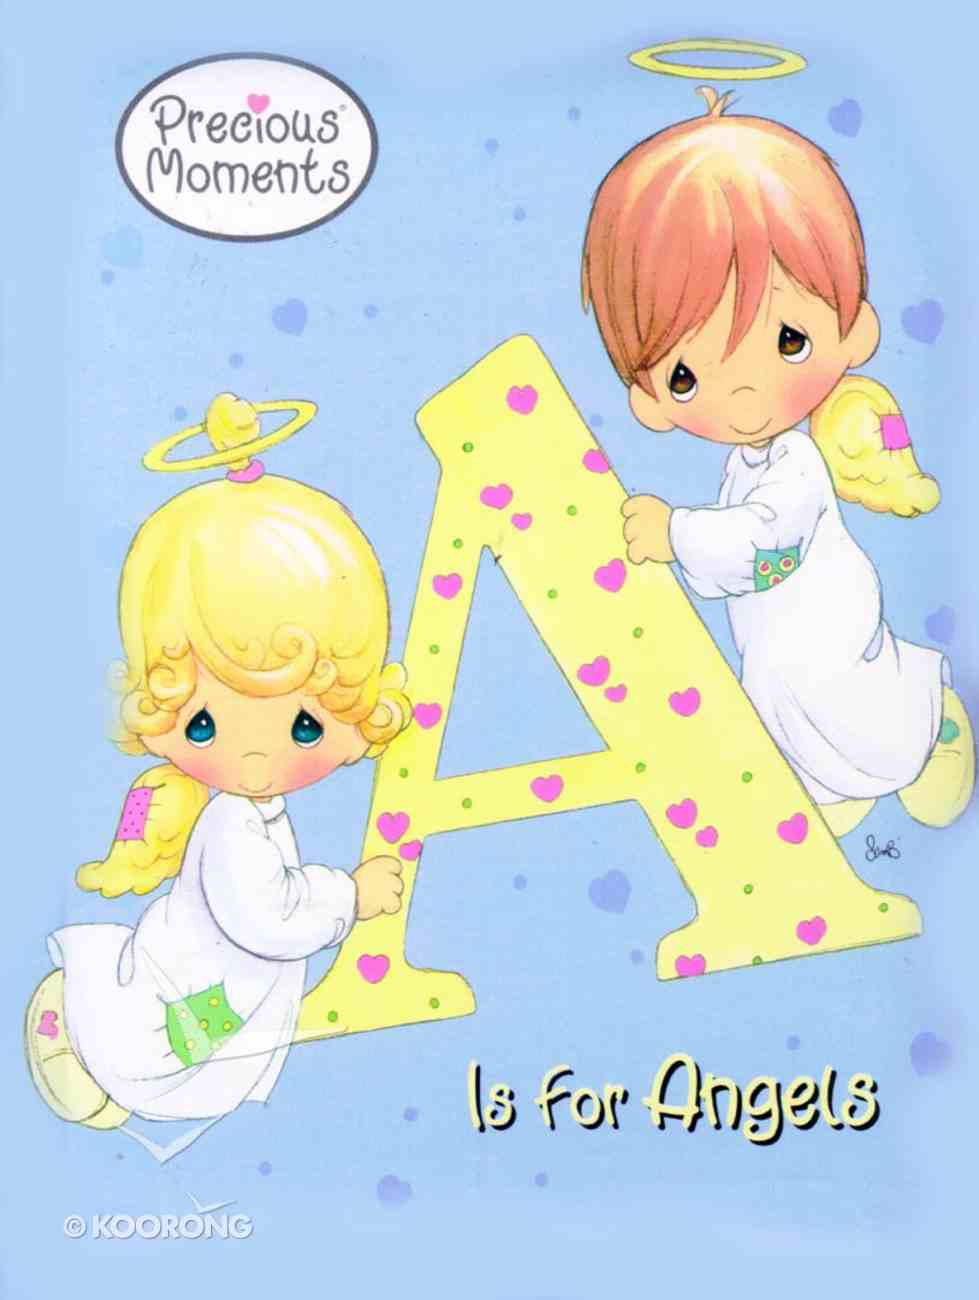 A is For Angel (Precious Moments) (Golden Books Series) Board Book